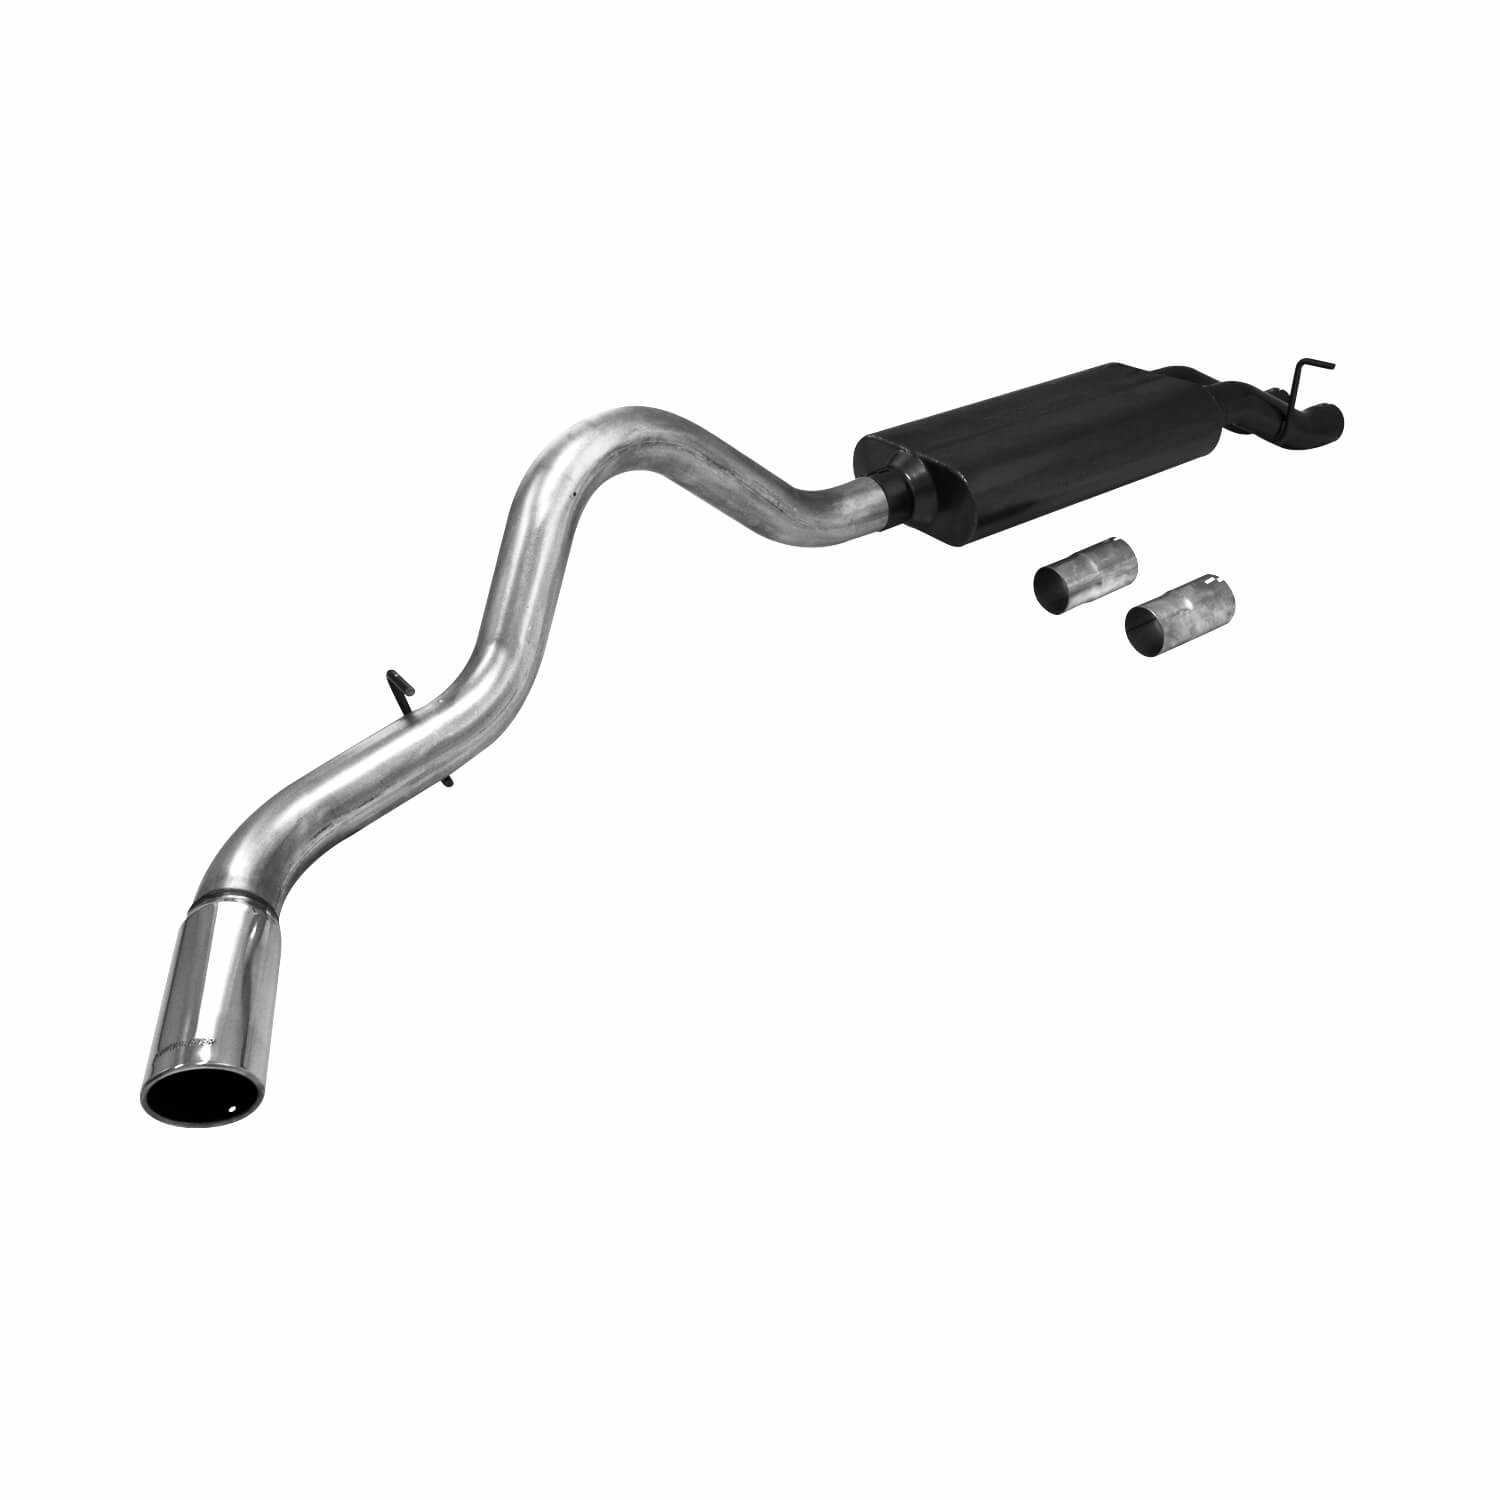 817328 Flowmaster American Thunder Cat Back Exhaust System